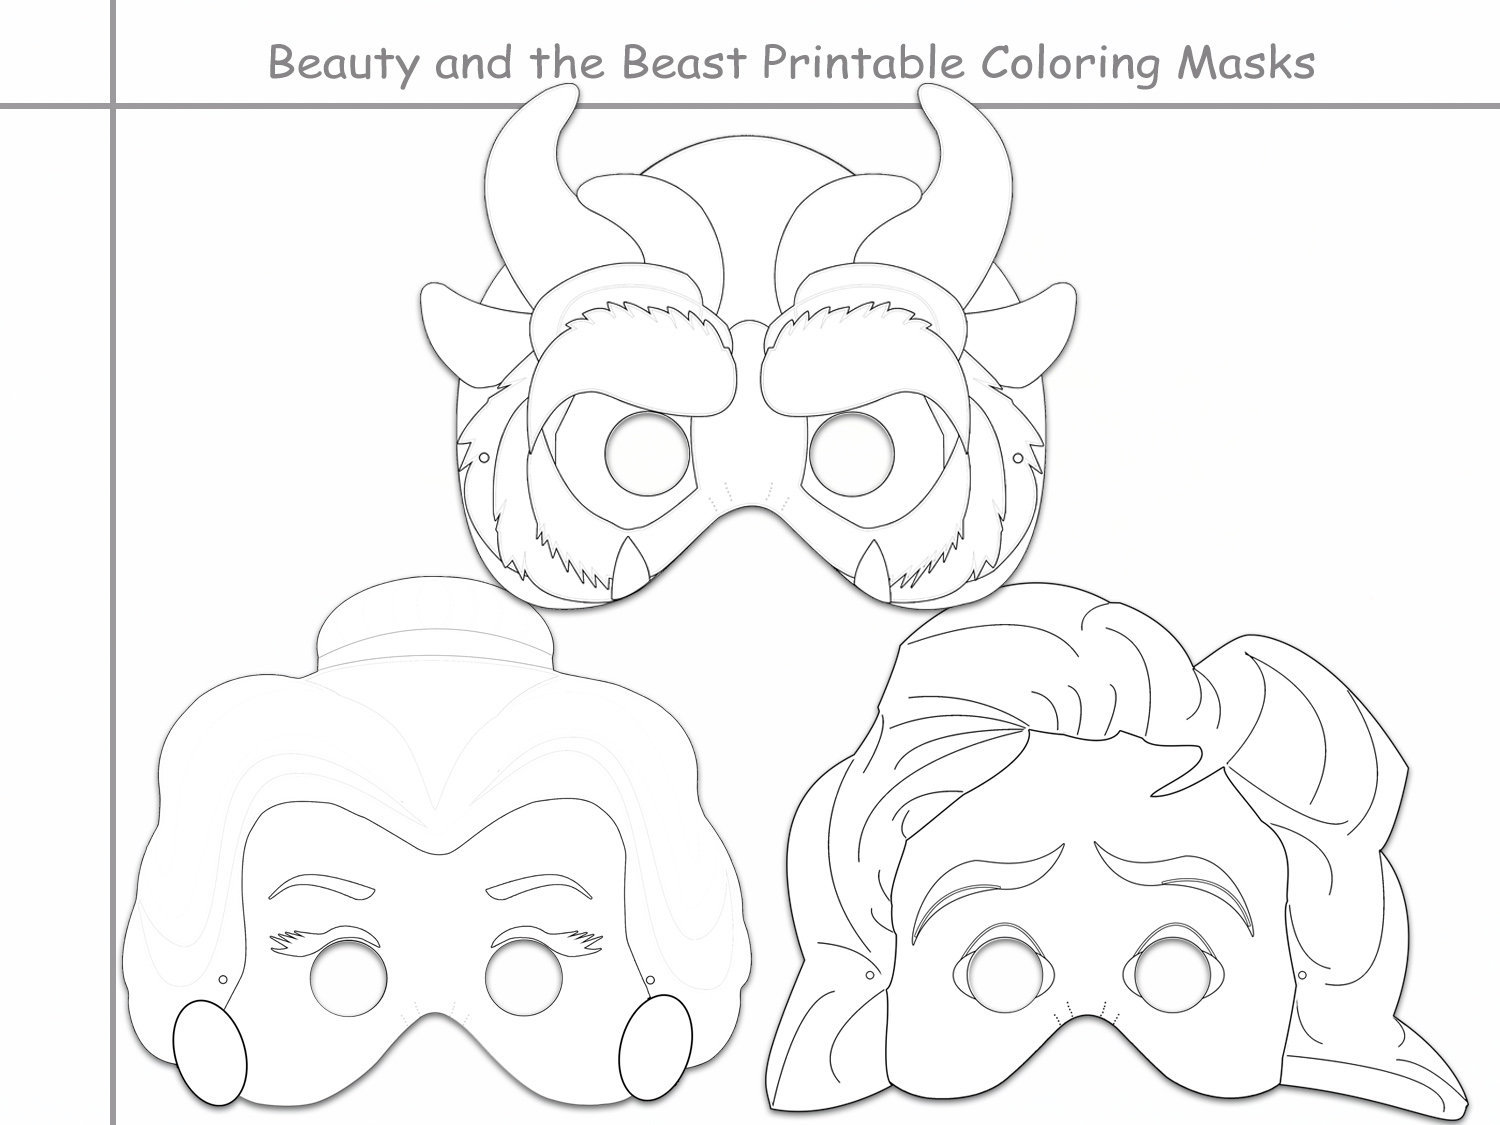 Coloring Beauty and the Beast Black and by